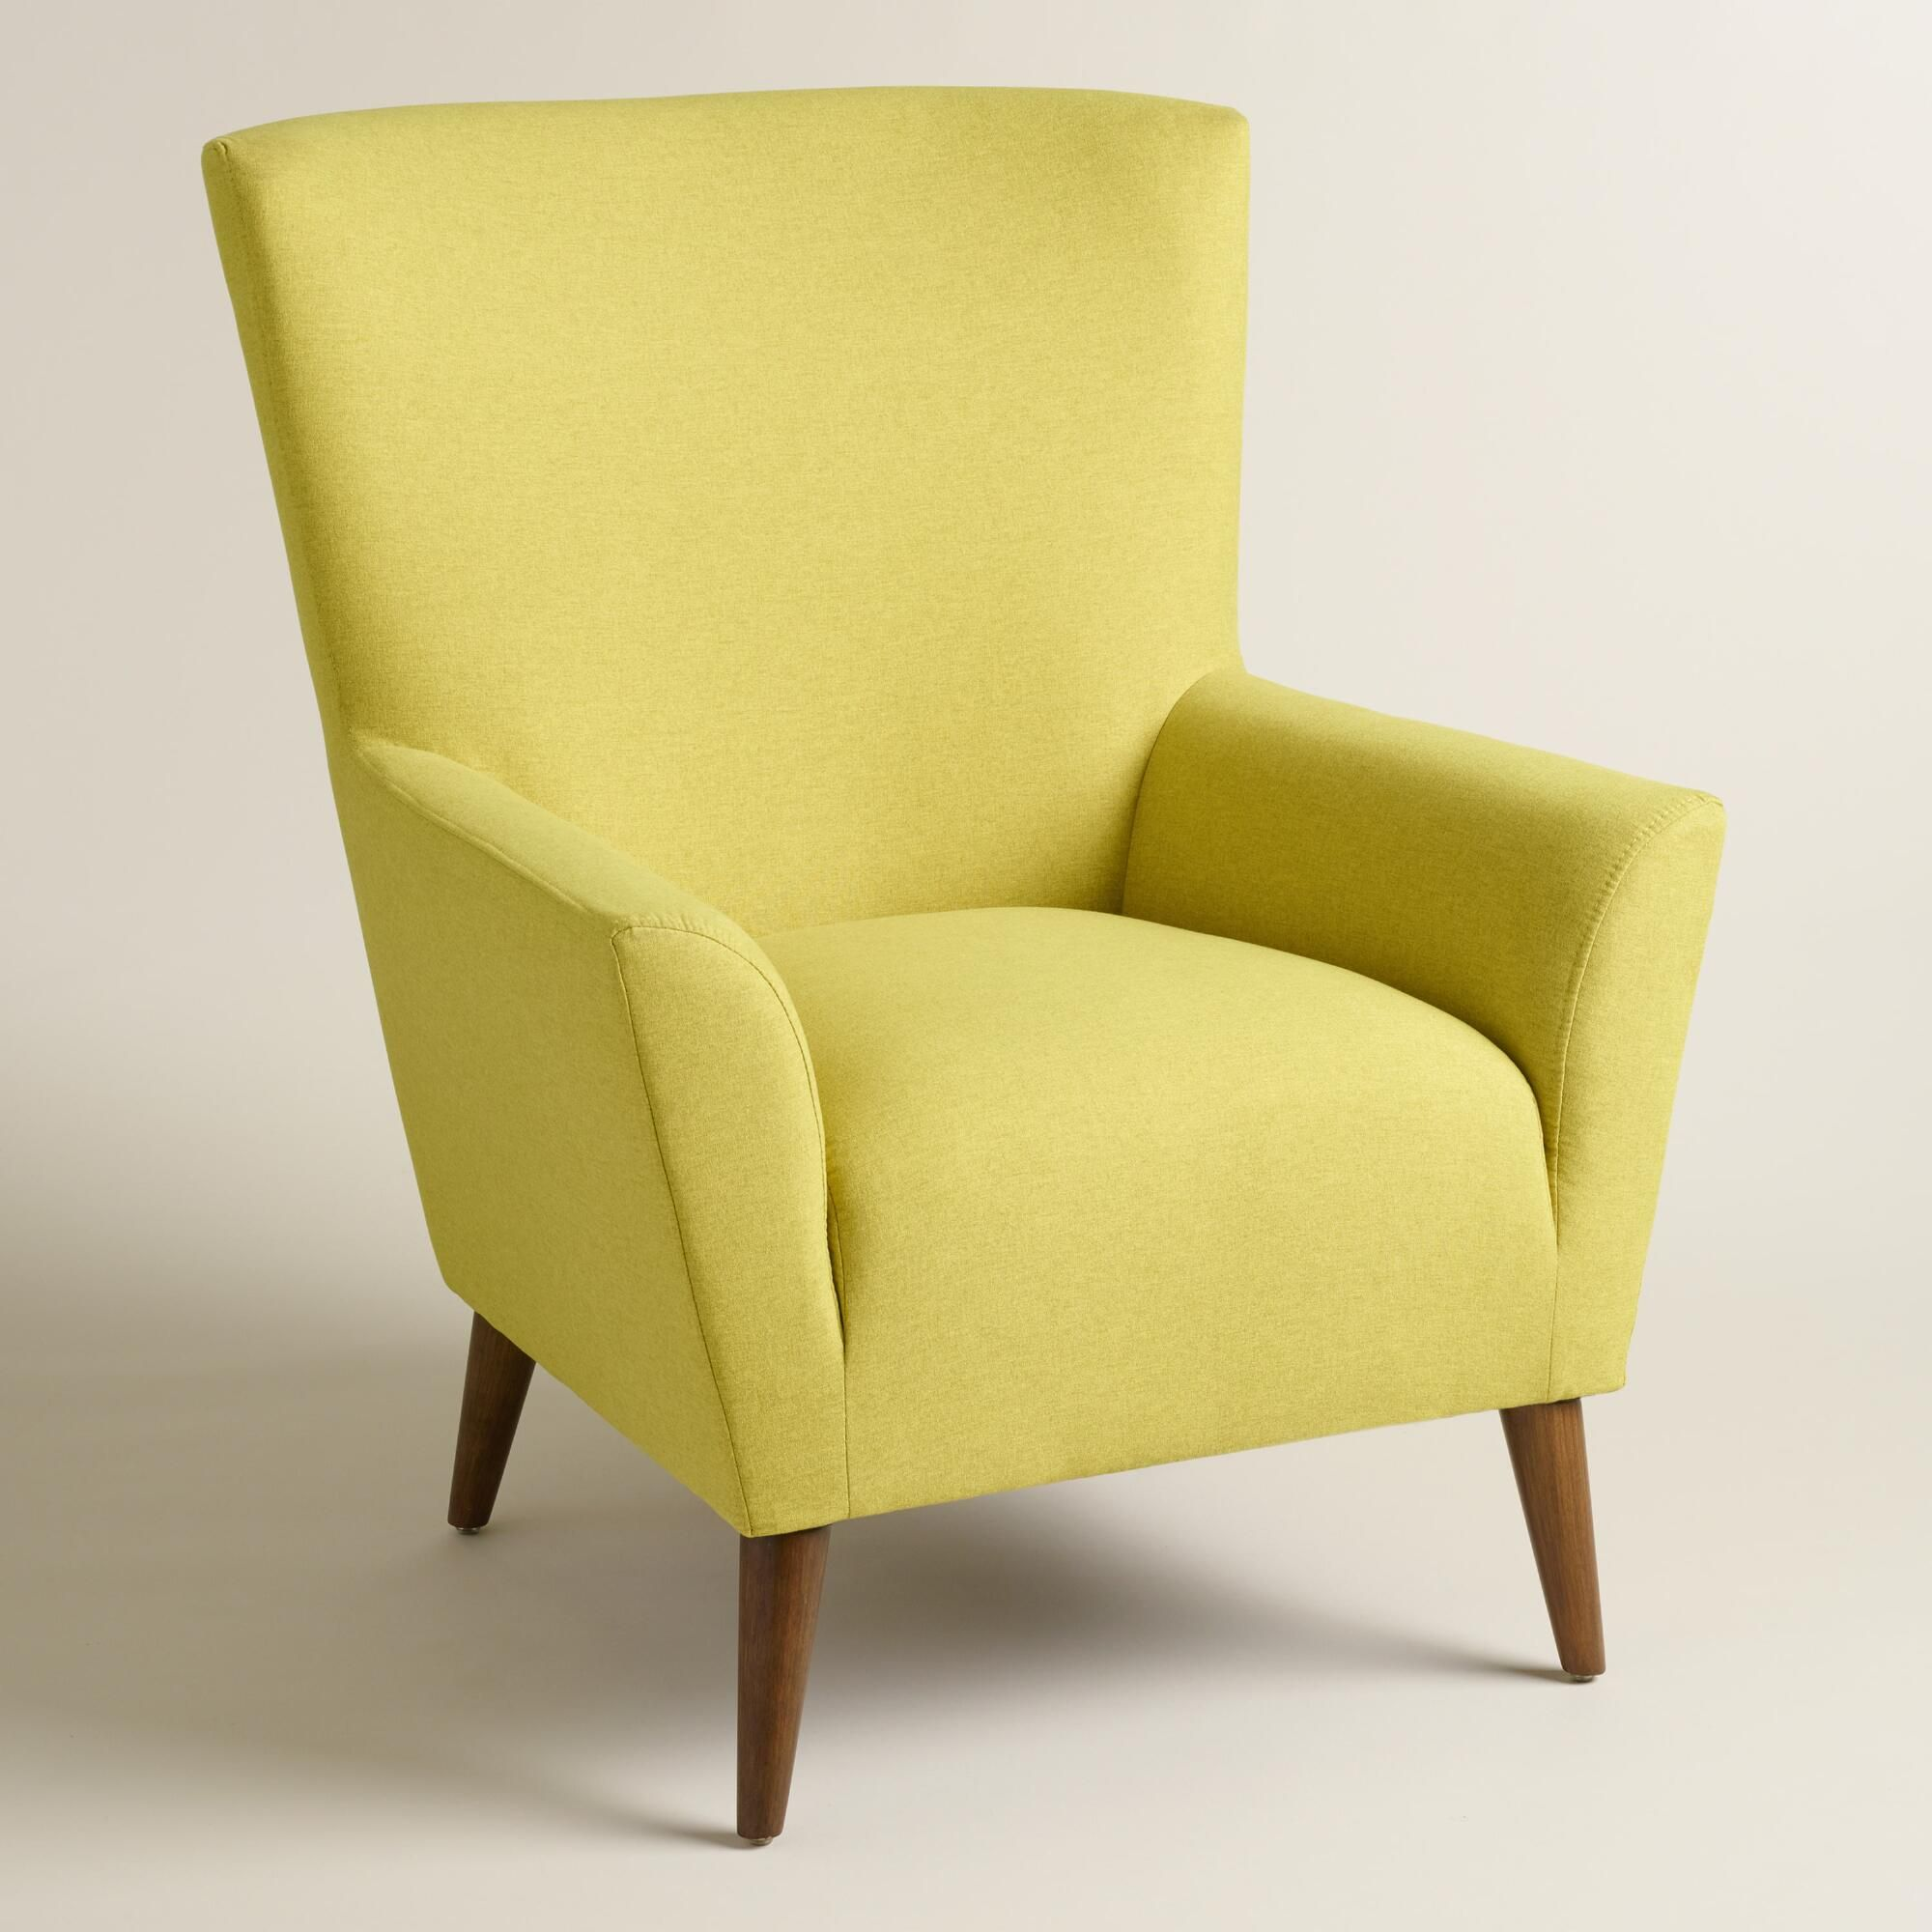 Superieur Our Oversized Armchair Makes A Retro Statement With Bright Chartreuse Green  Upholstery, A High Wingback